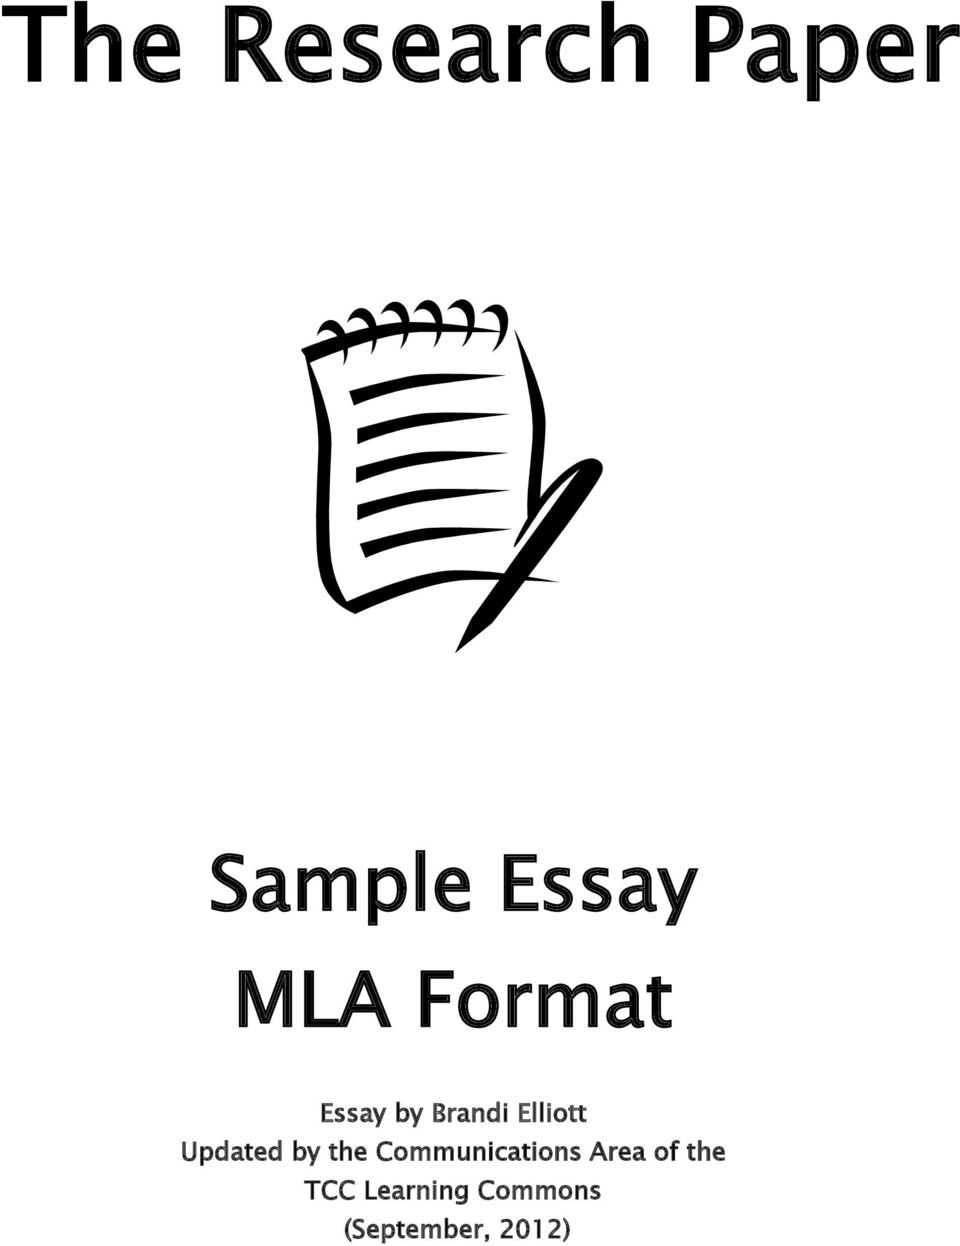 The Research Paper Sample Essay Mla Format Essay By Brandi Elliott  Updated By The Communications Area